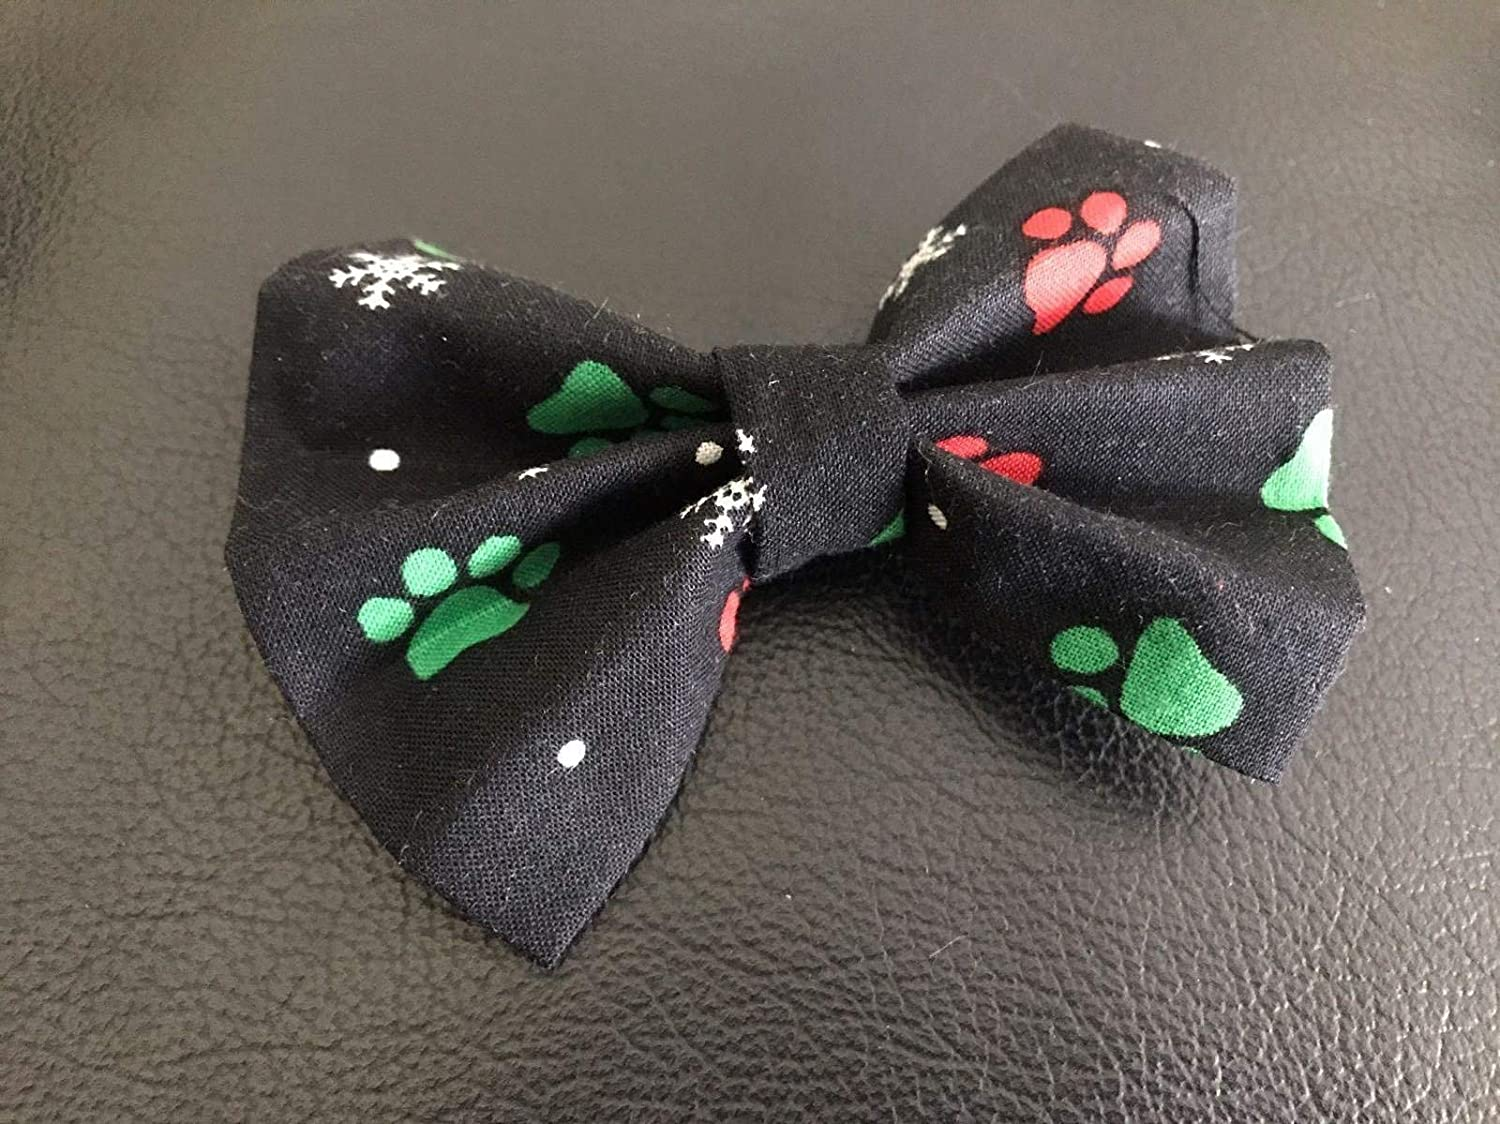 Dog Bow Tie in Black, Red and Green Christmas Paws and Snowflakes for Winter Holiday Pet Fashion - Small 4 only